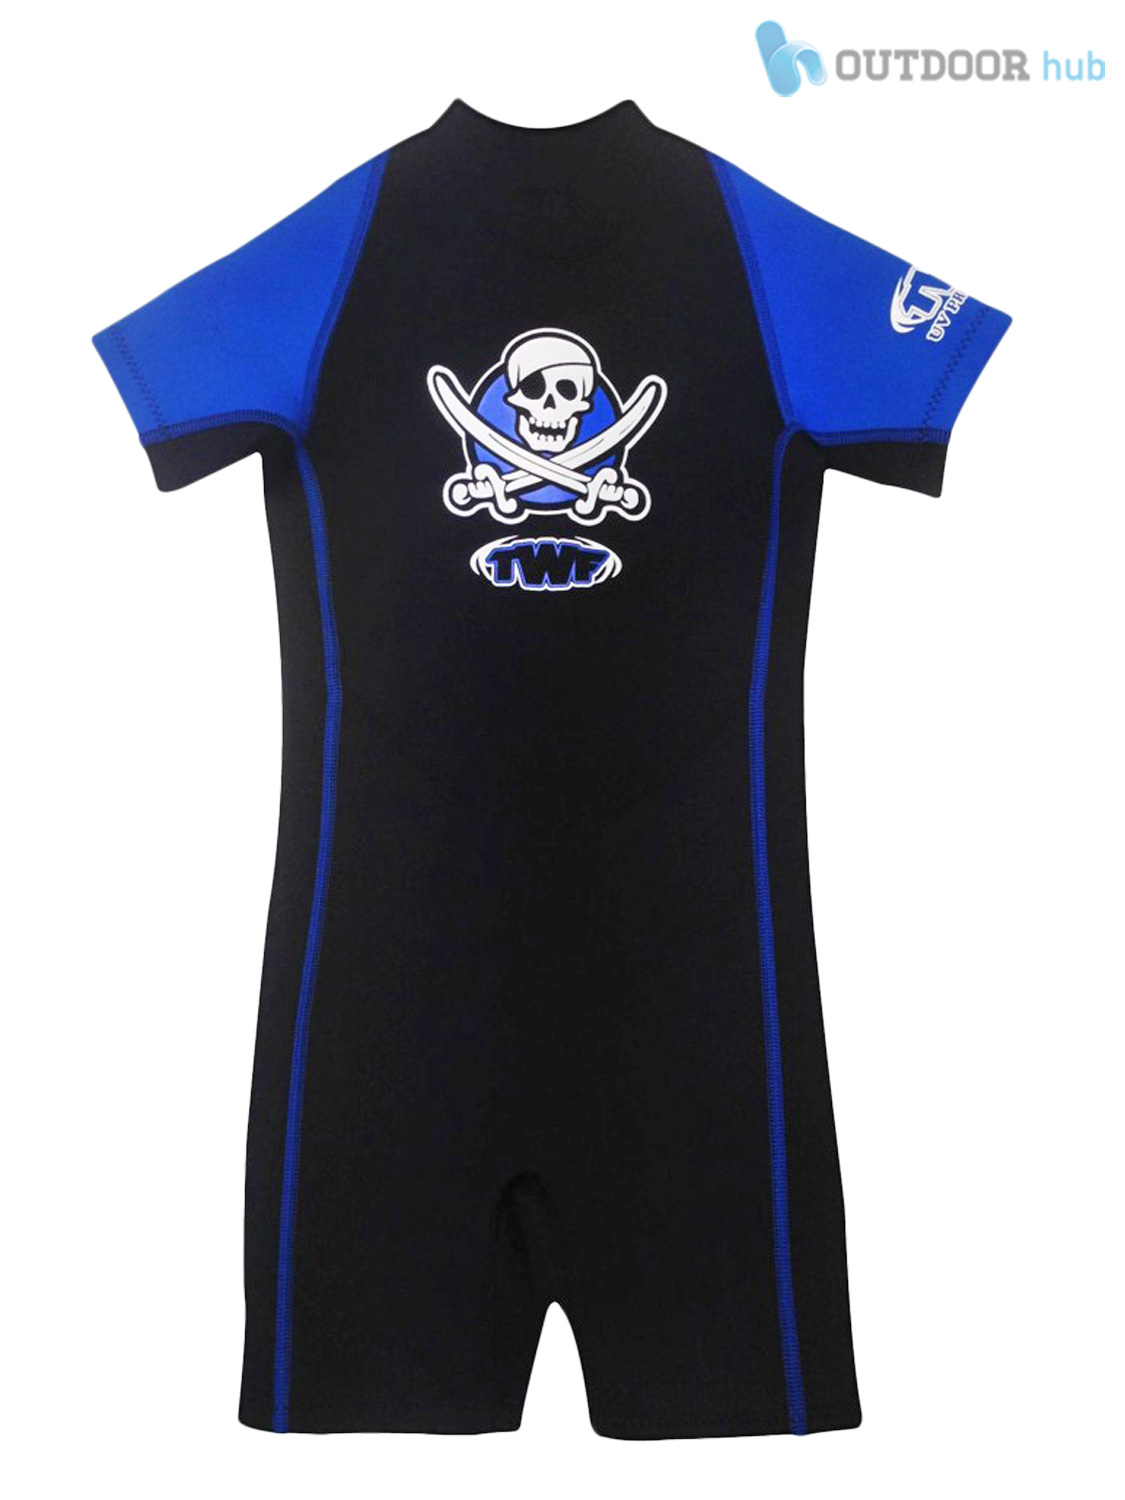 TWF-2mm-Kids-Shortie-Wetsuit-Childs-Shorty-Boys-Girls-Beach-Swim-Baby-Toddler thumbnail 3